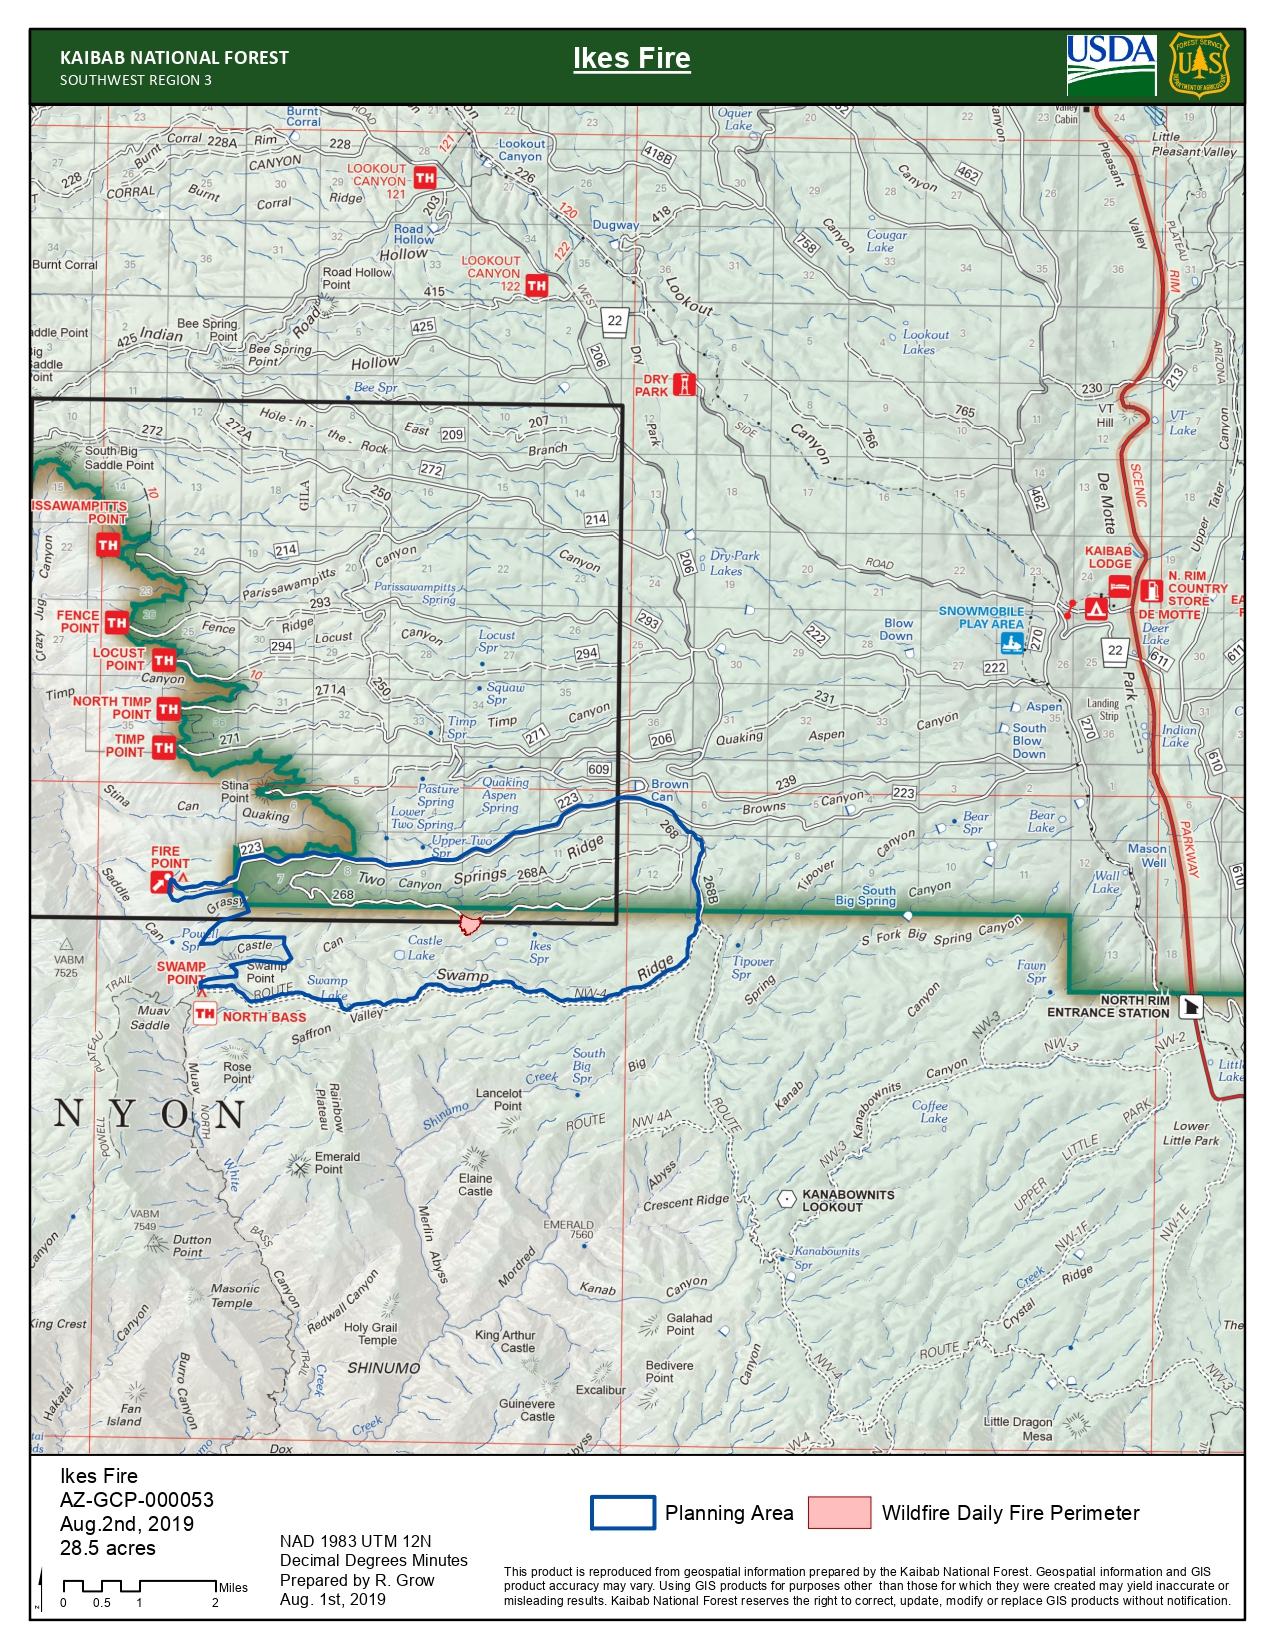 A map shows the Ikes fire perimeter in red